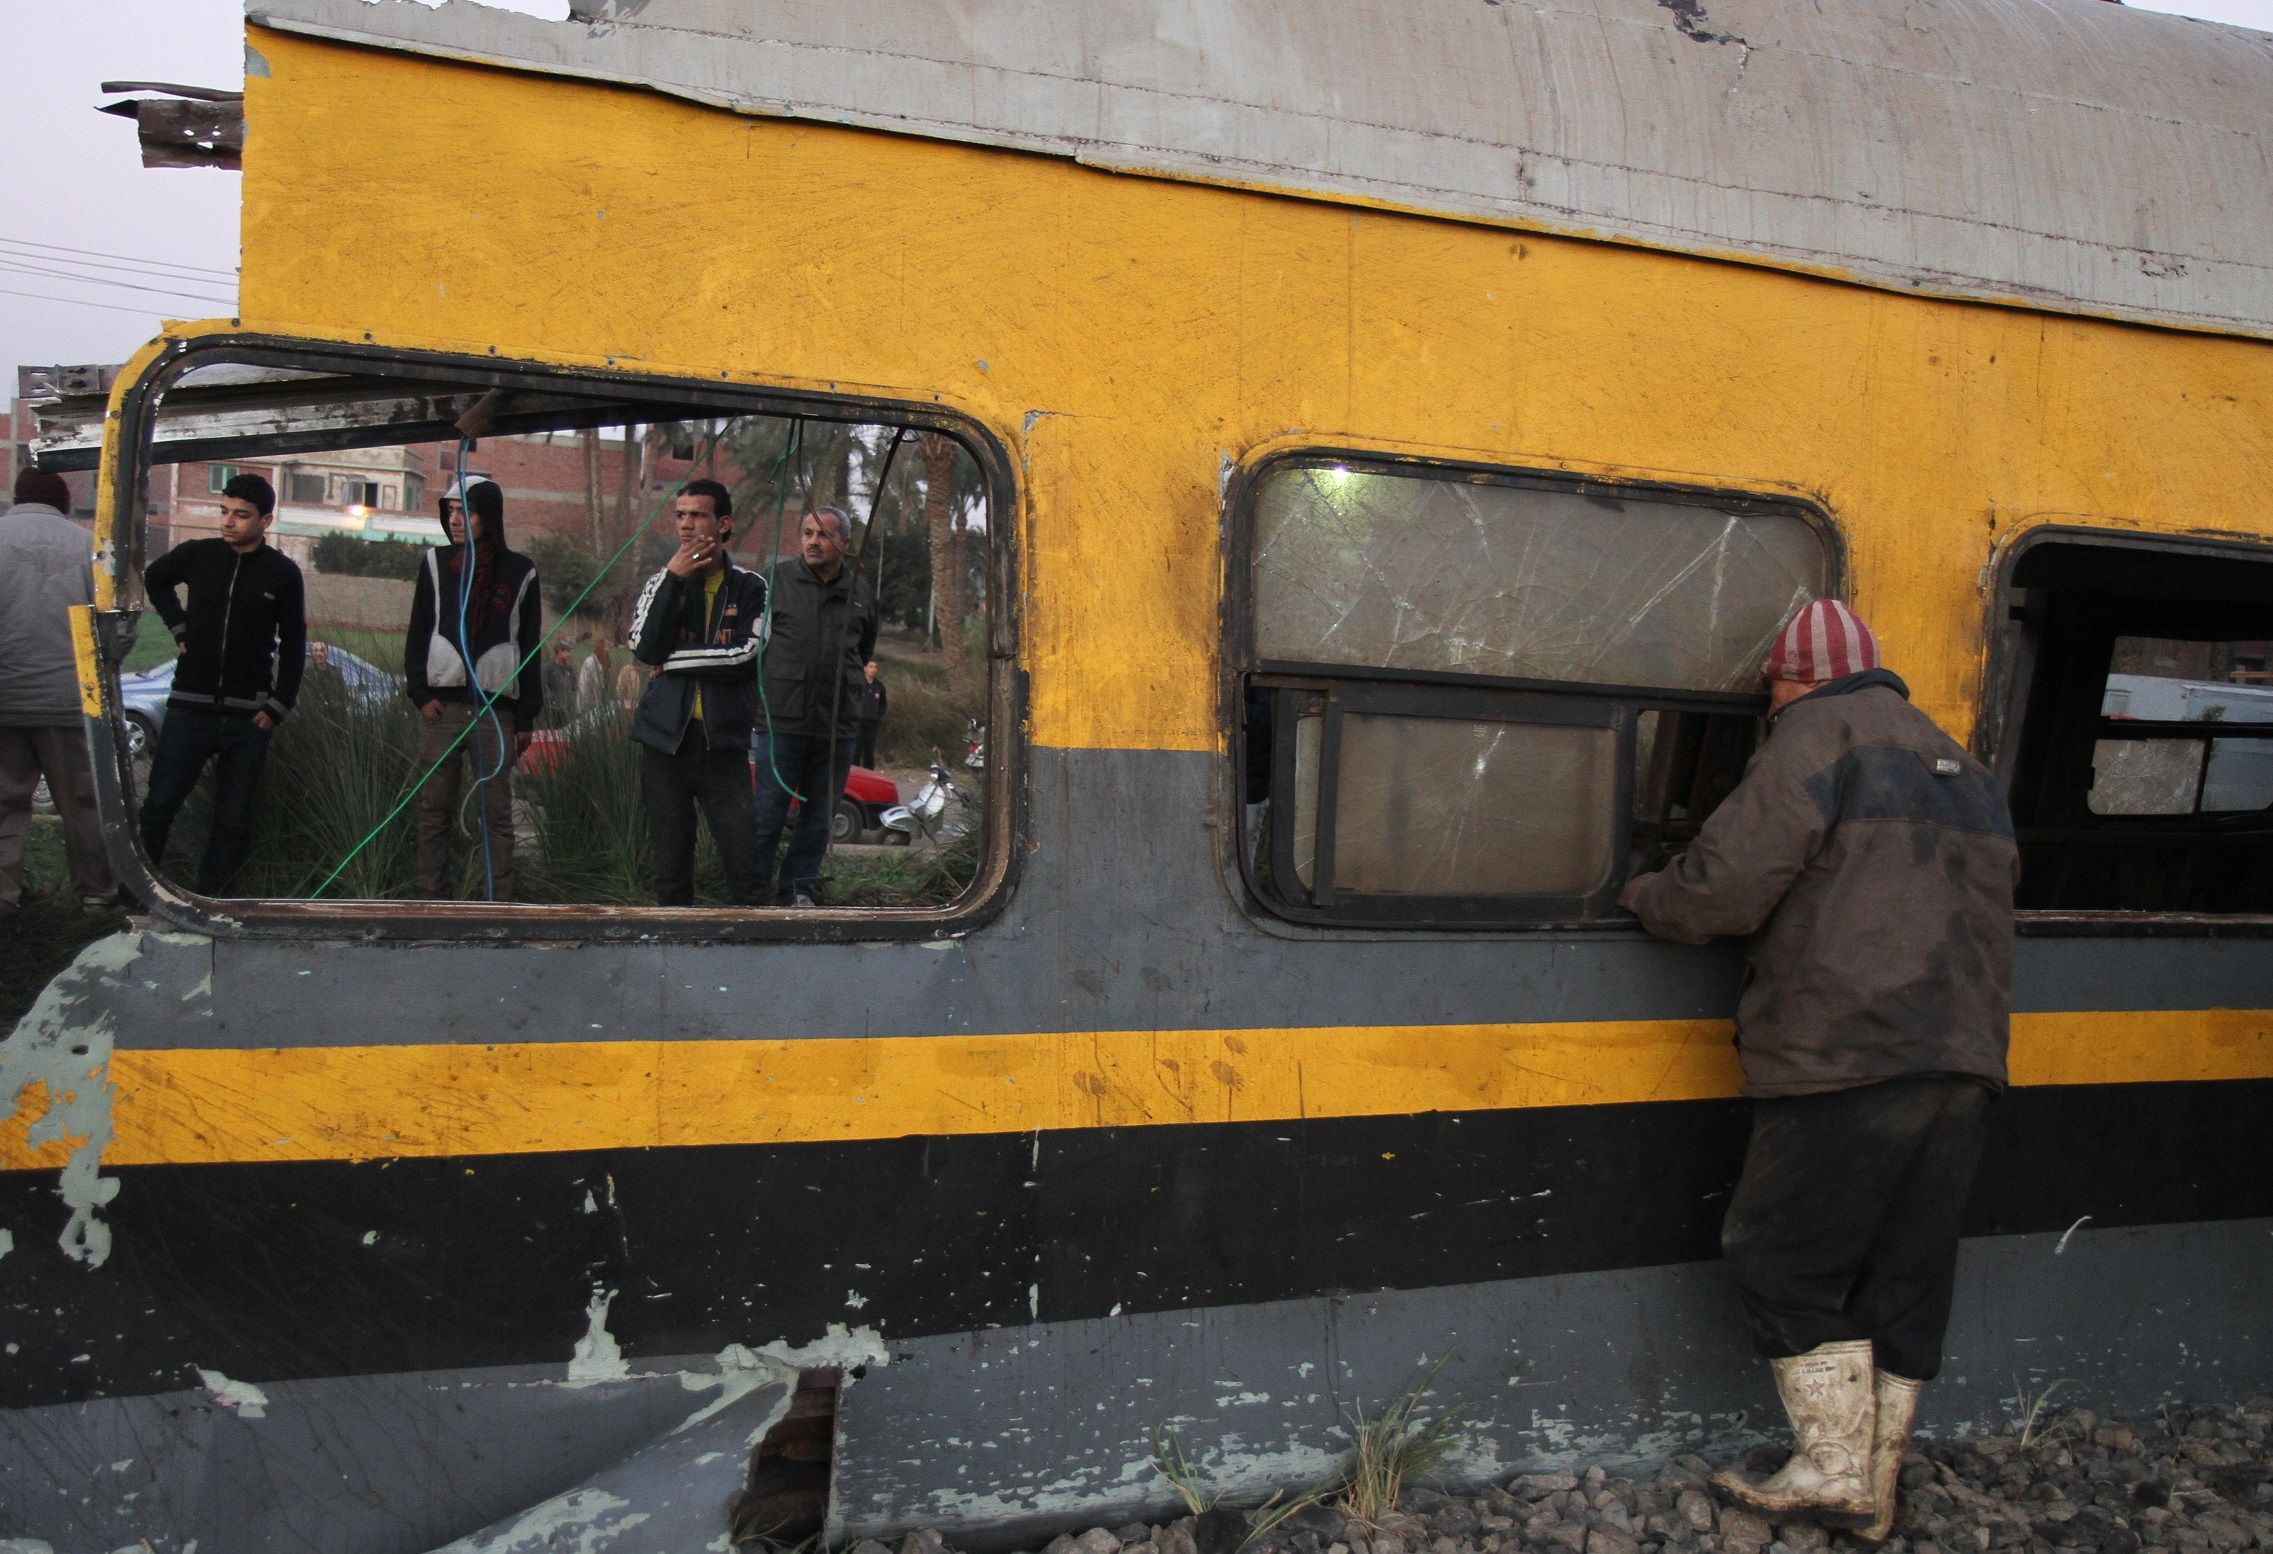 2 trains collide in Egypt, killing at least 25